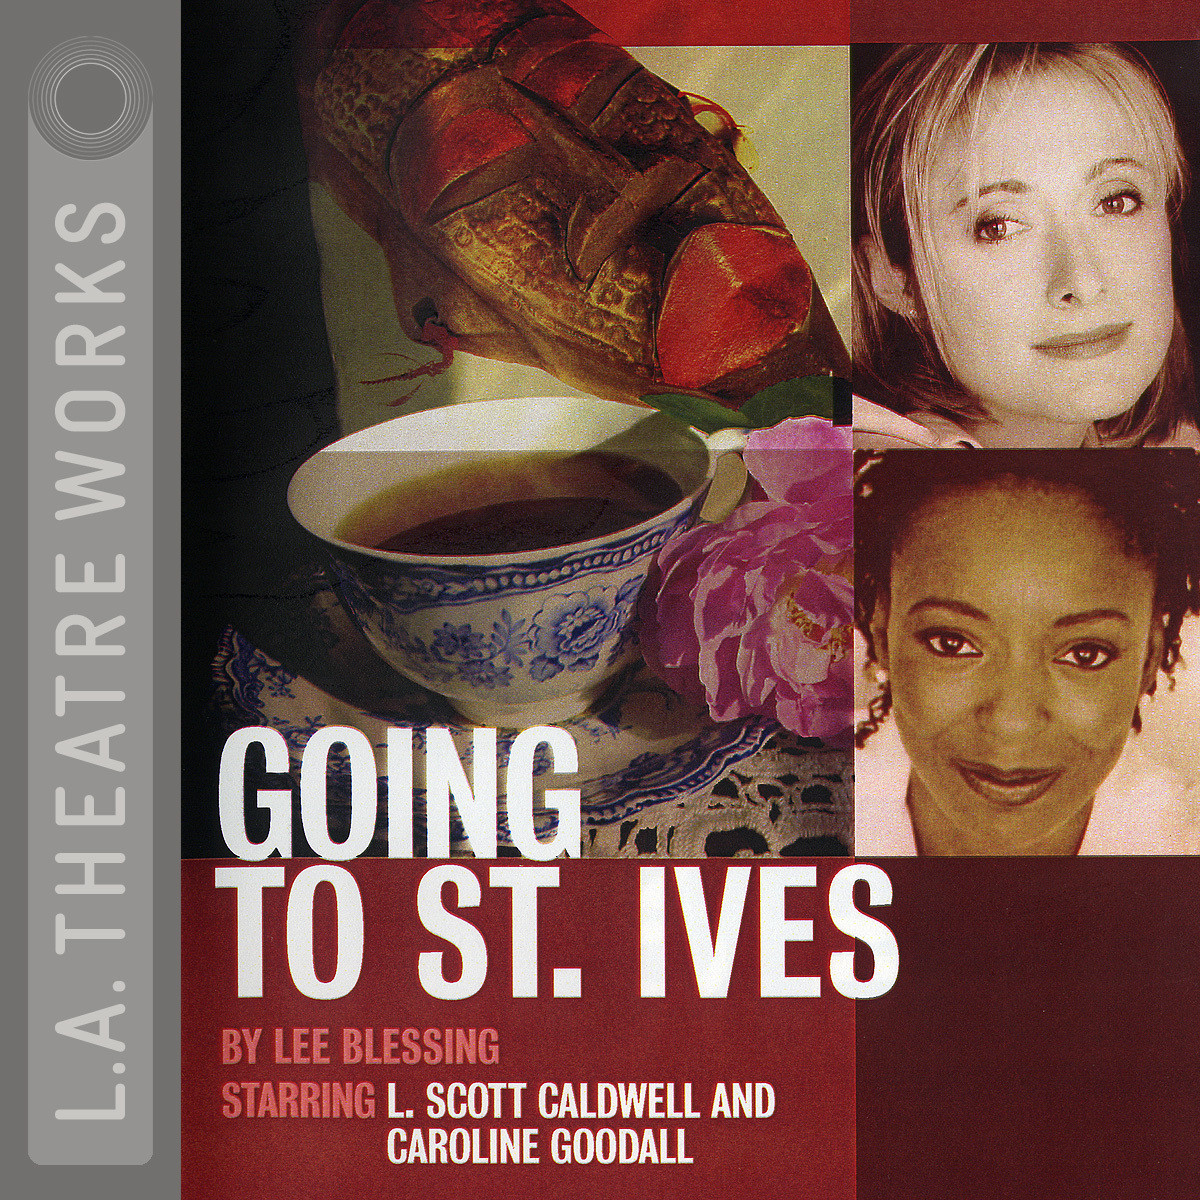 Printable Going to St. Ives Audiobook Cover Art